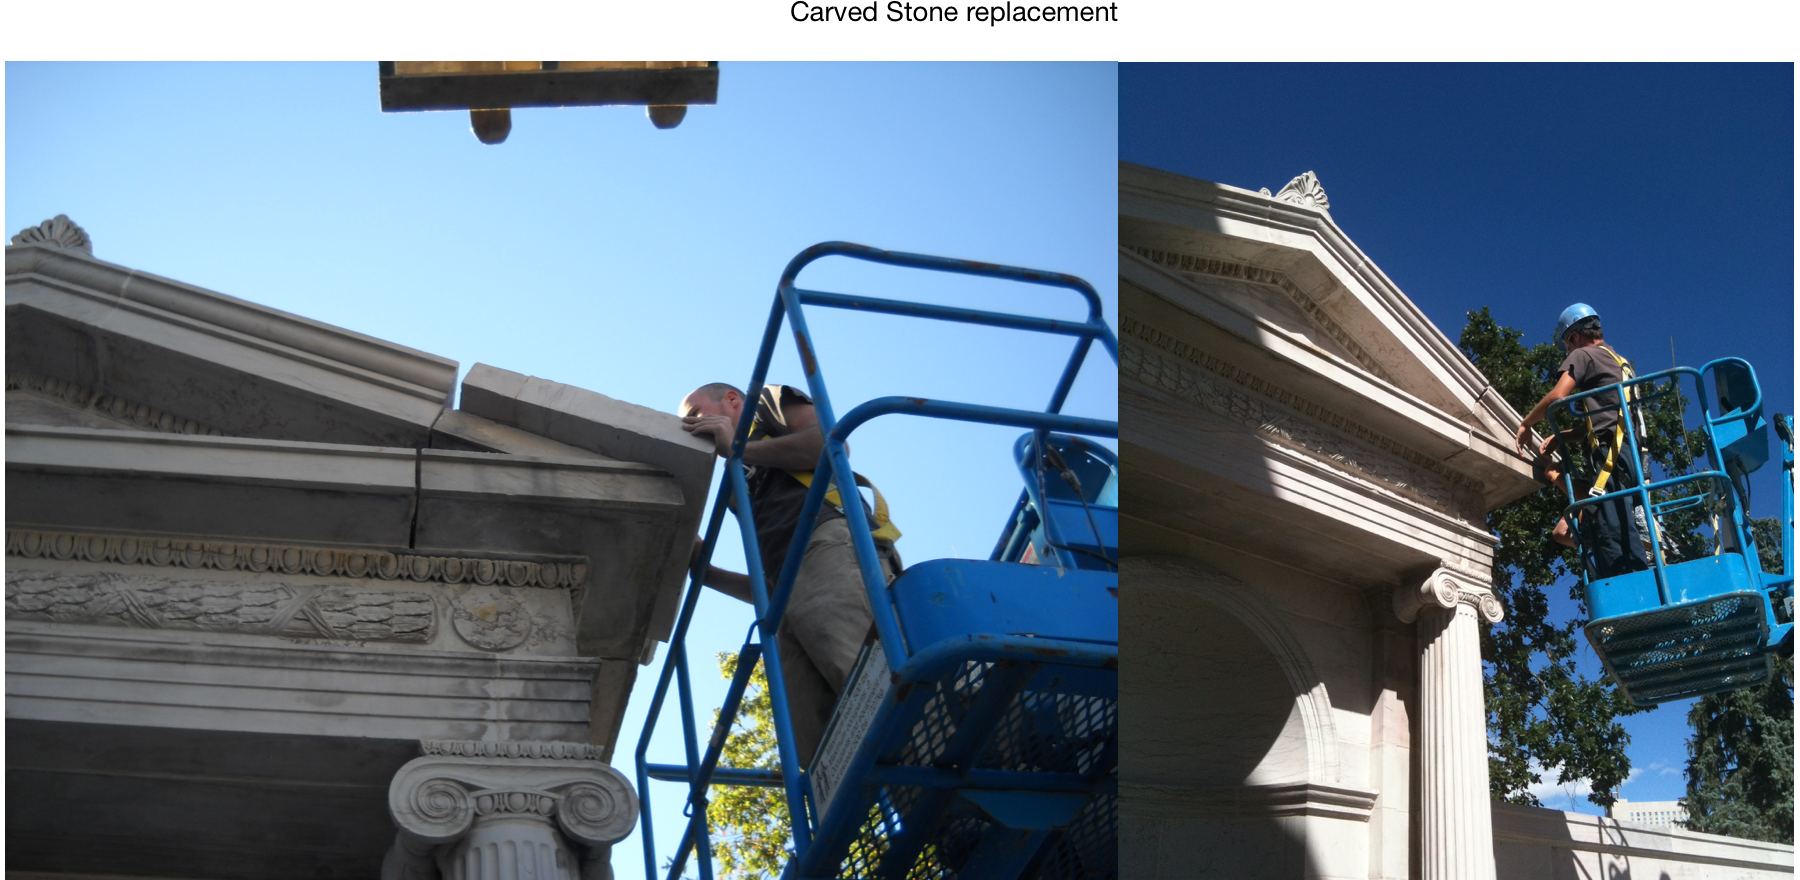 Greek Amphitheater stone replacement in Civic Center Park